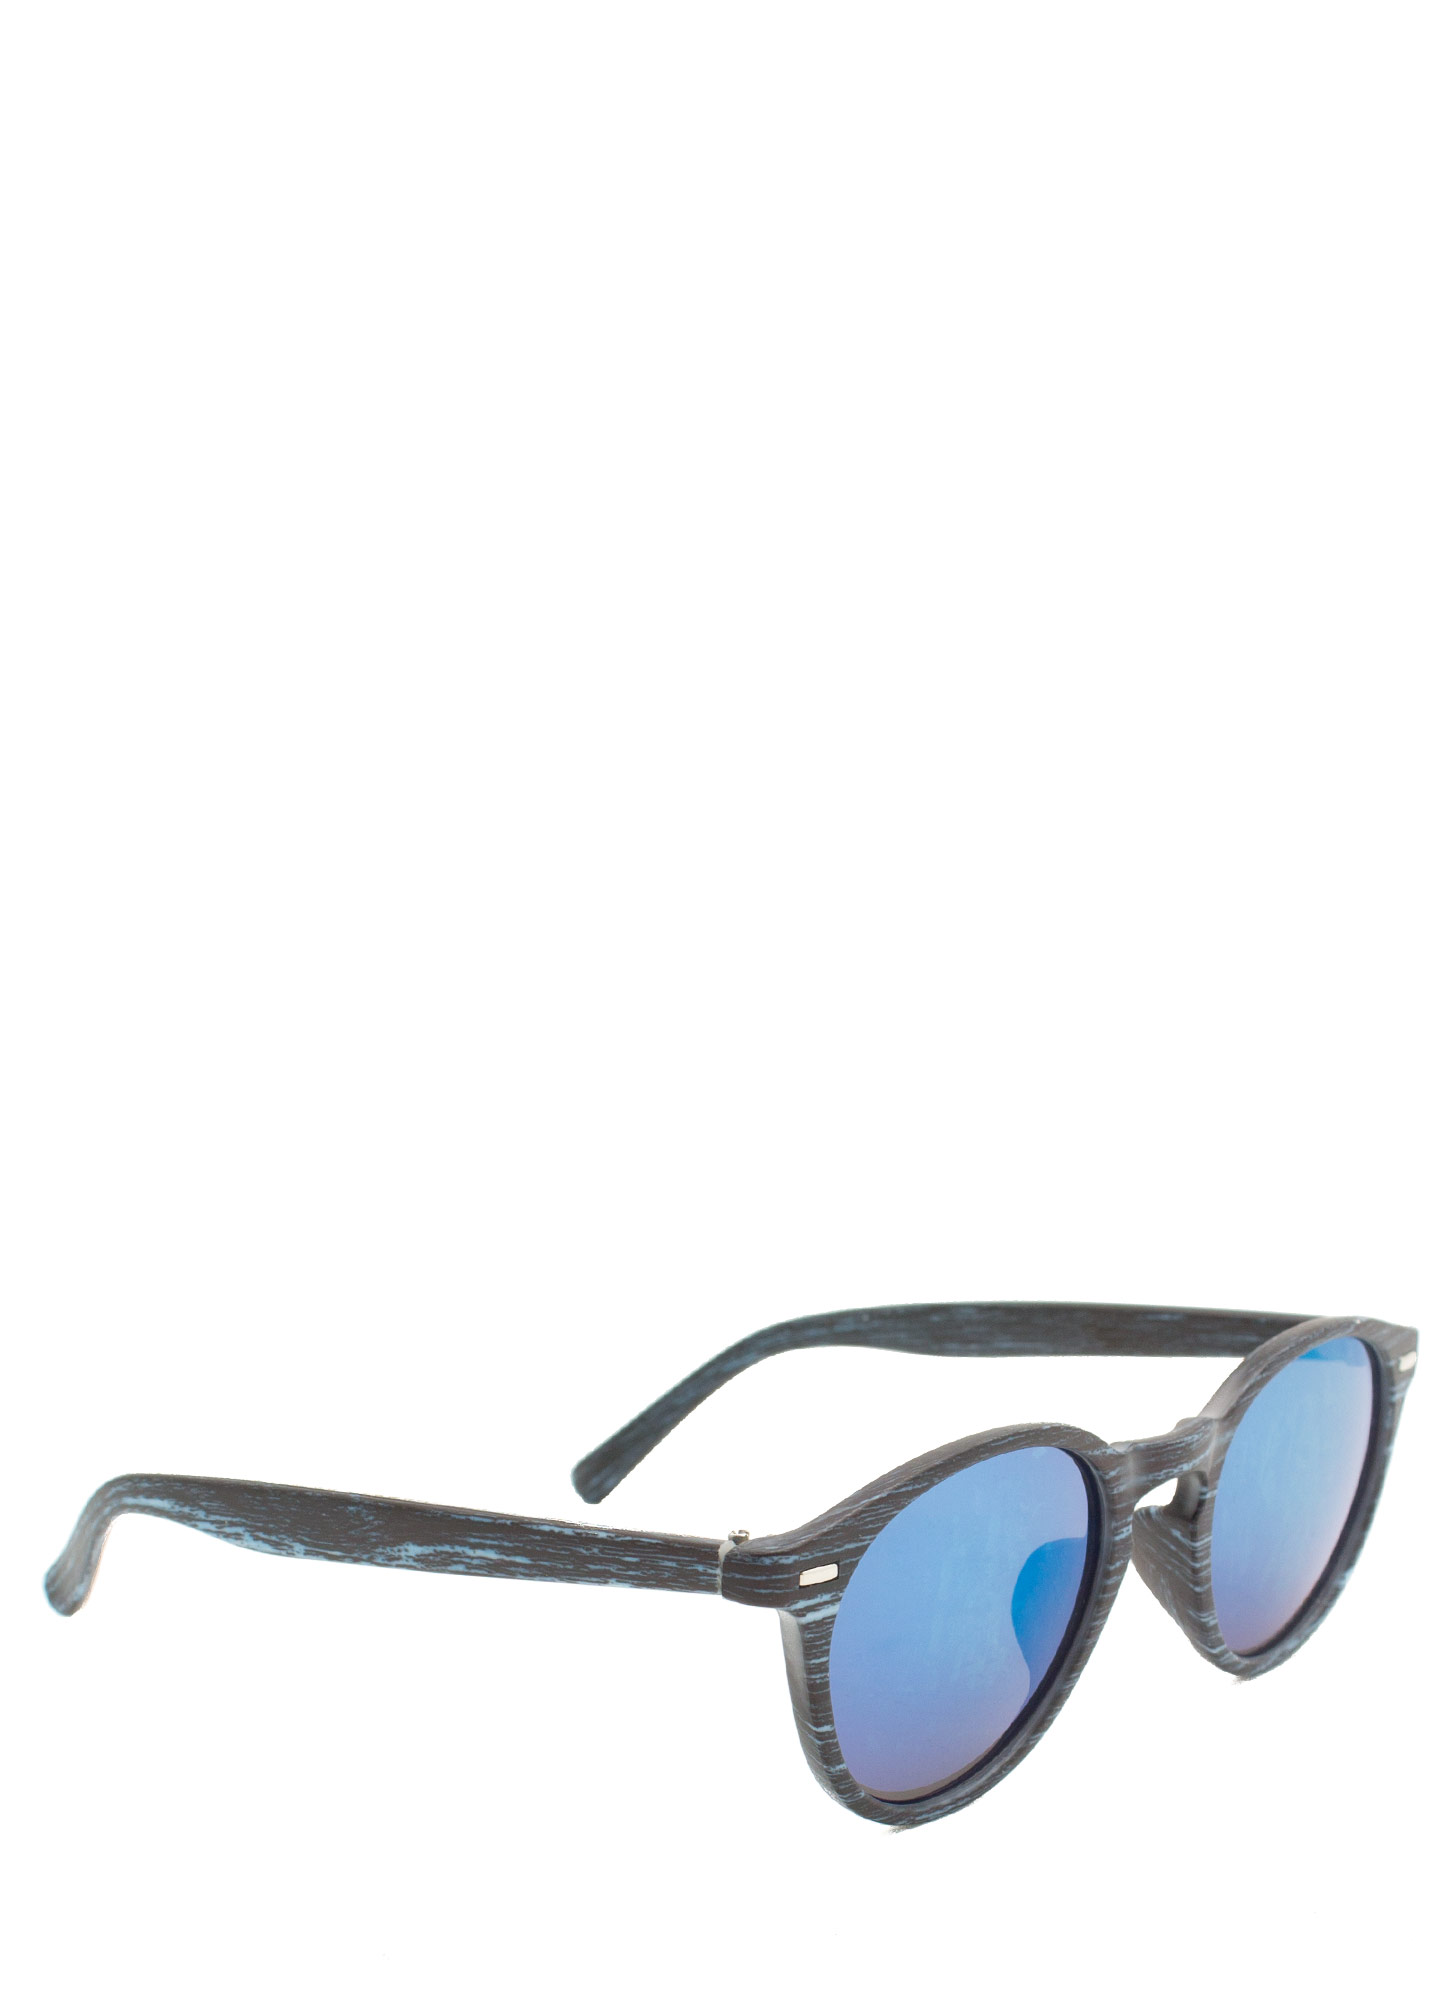 Wood Finish Reflective Sunglasses BLUE